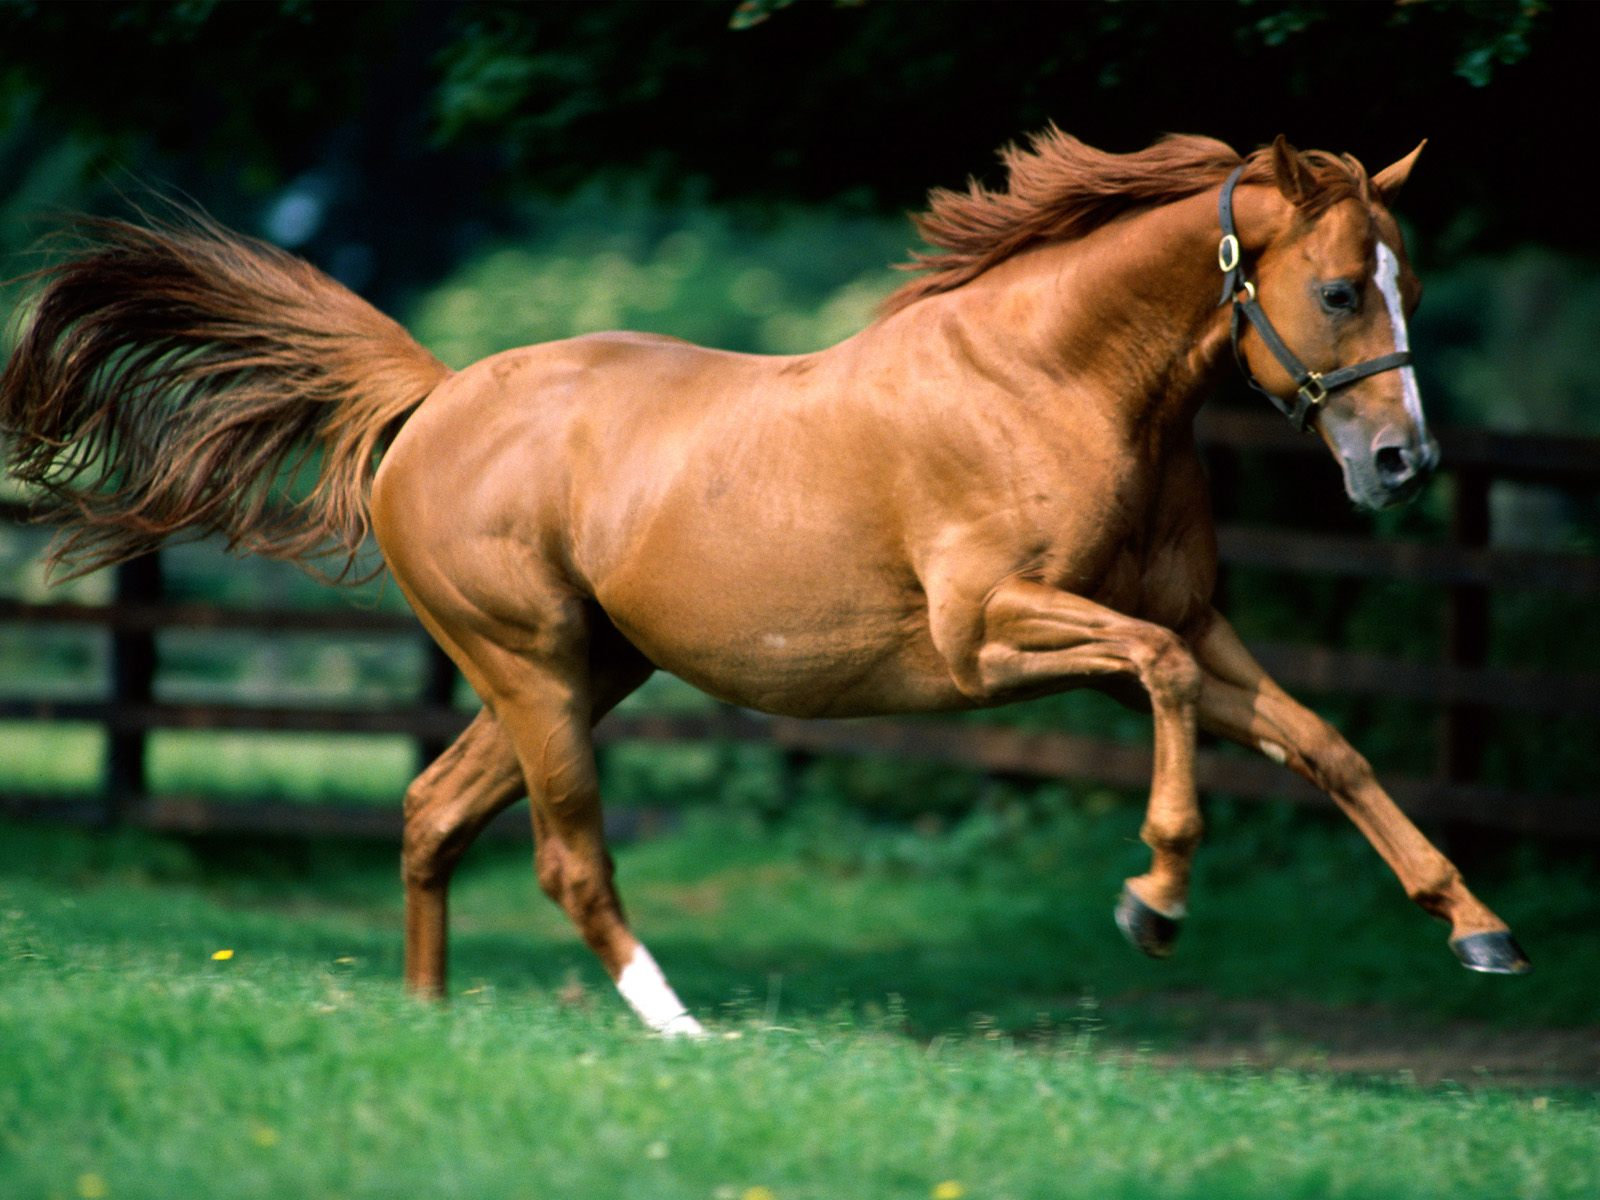 Download Full HD Wallpapers absolutely free for your pc desktop, laptop and mobile devices. Brown Horse Running wallpapers